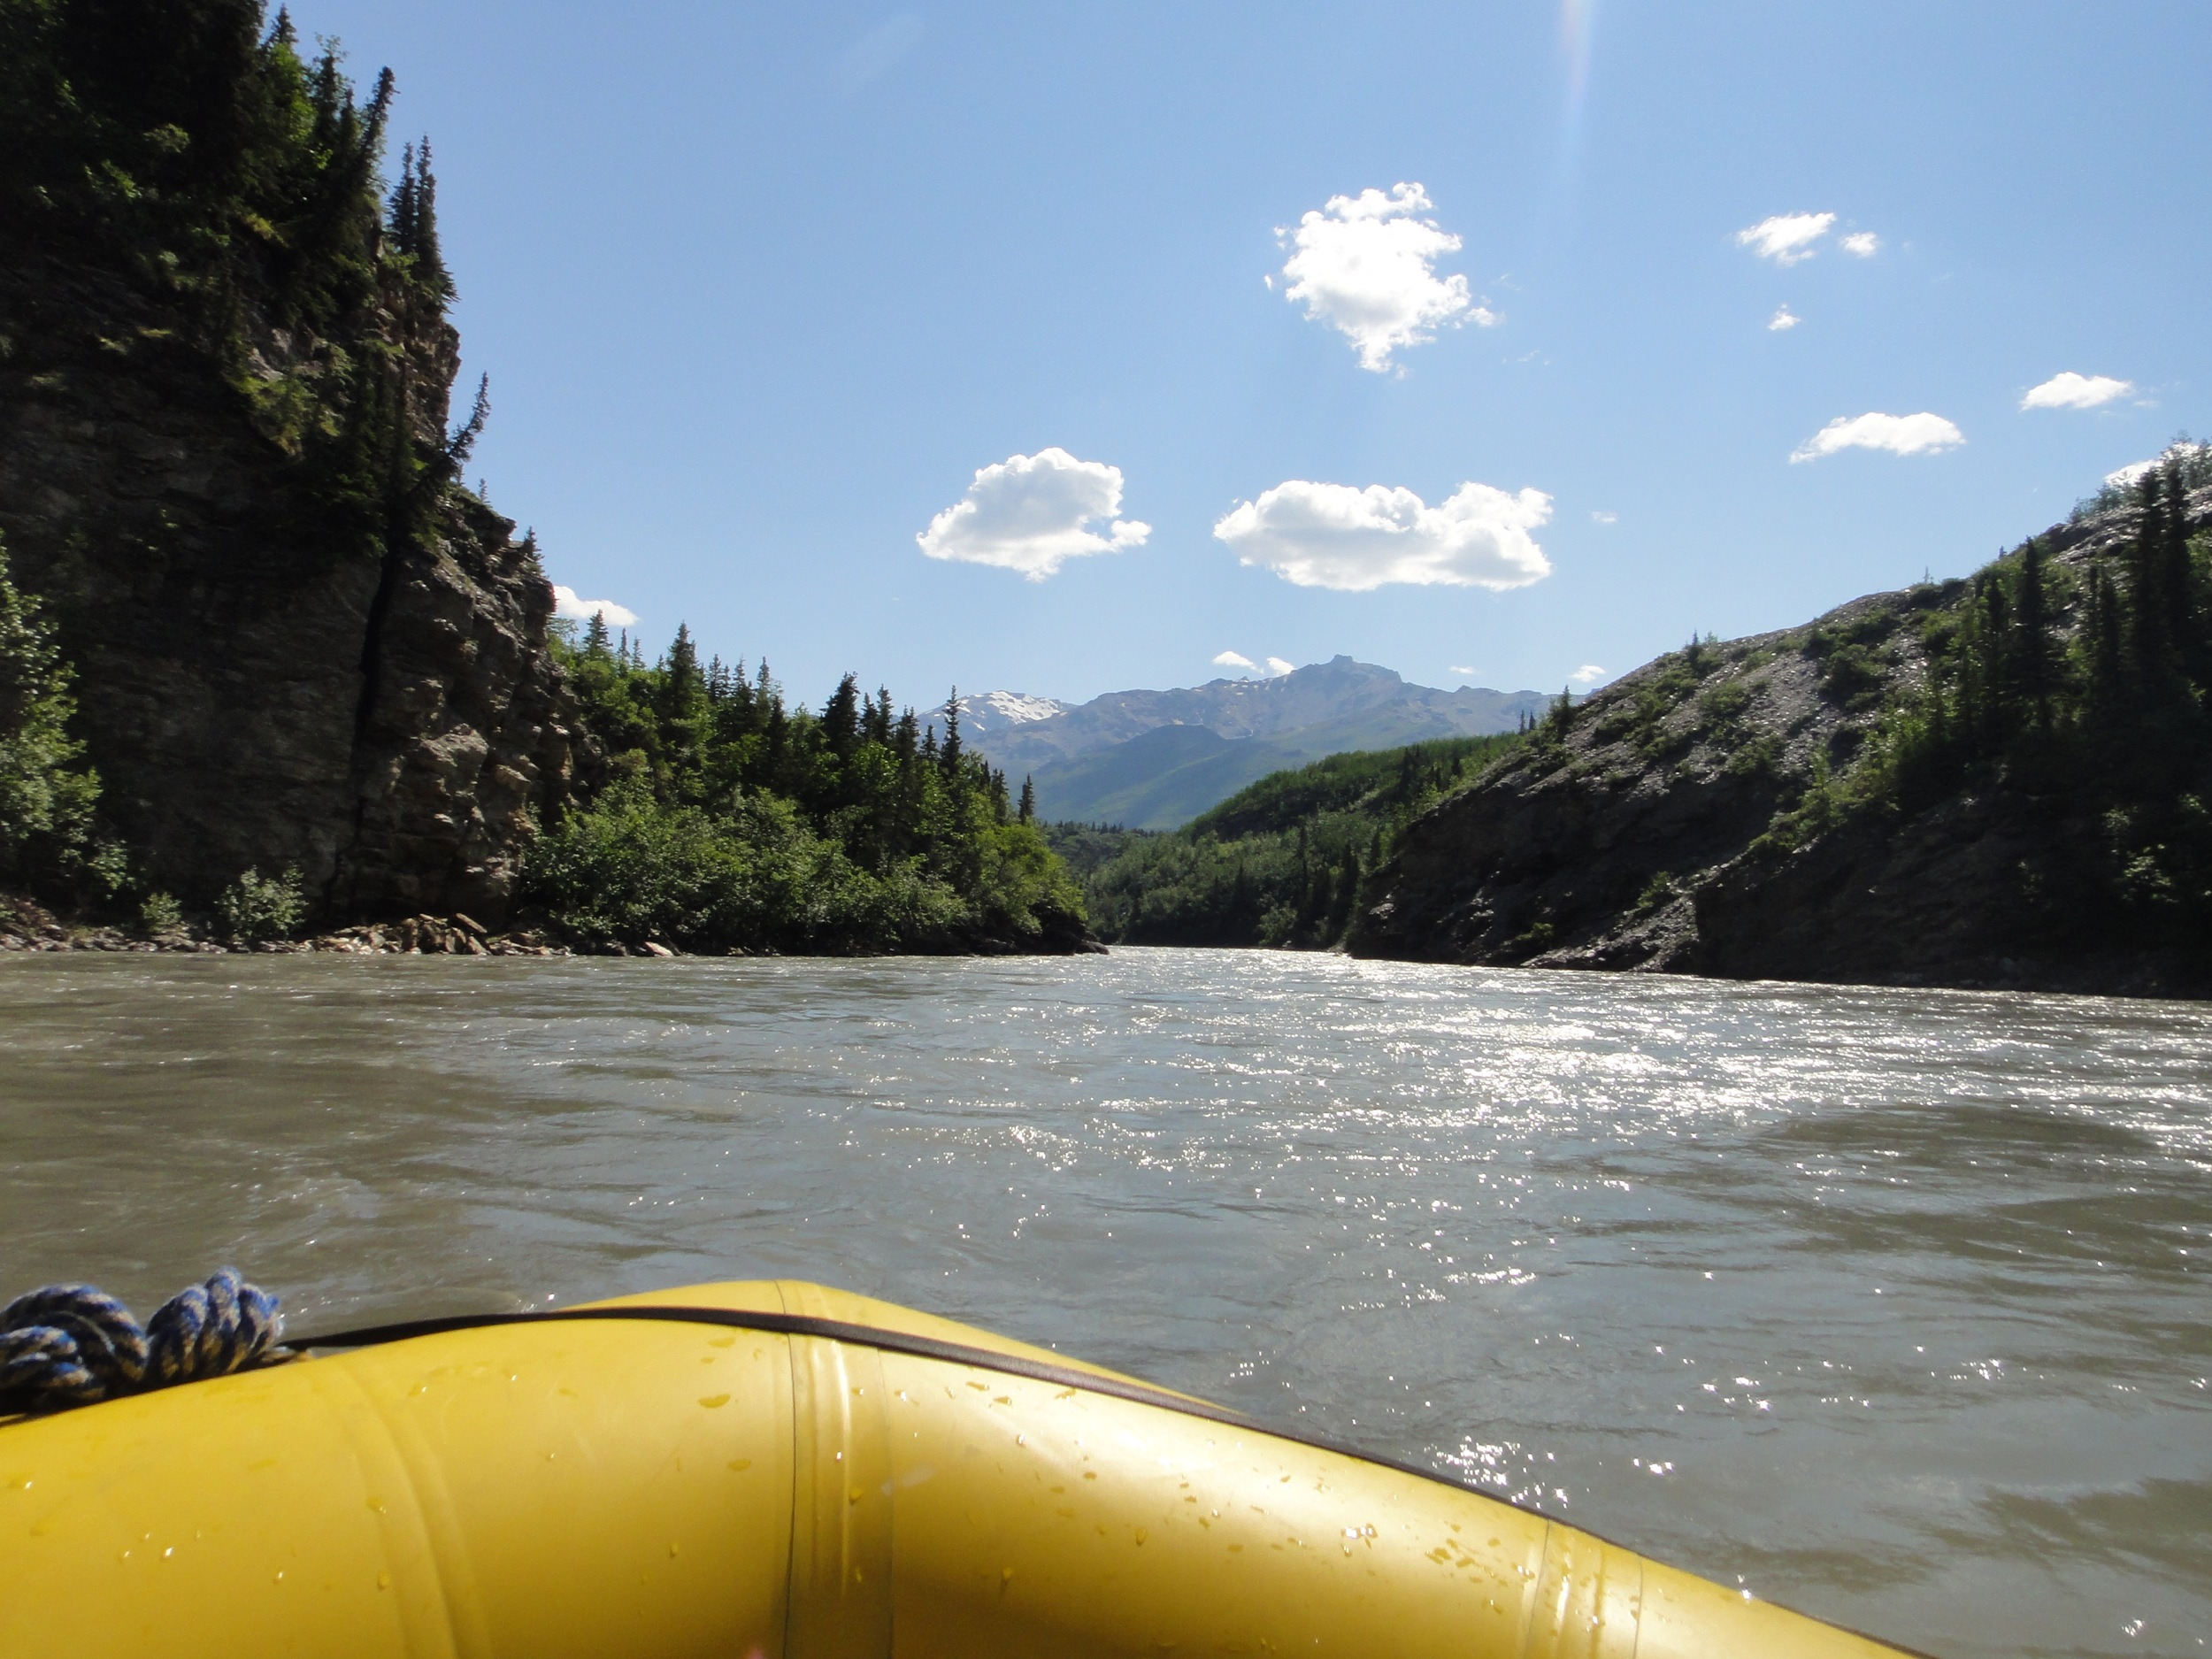 View from the raft headed down the Nenana at a calm section of the river.